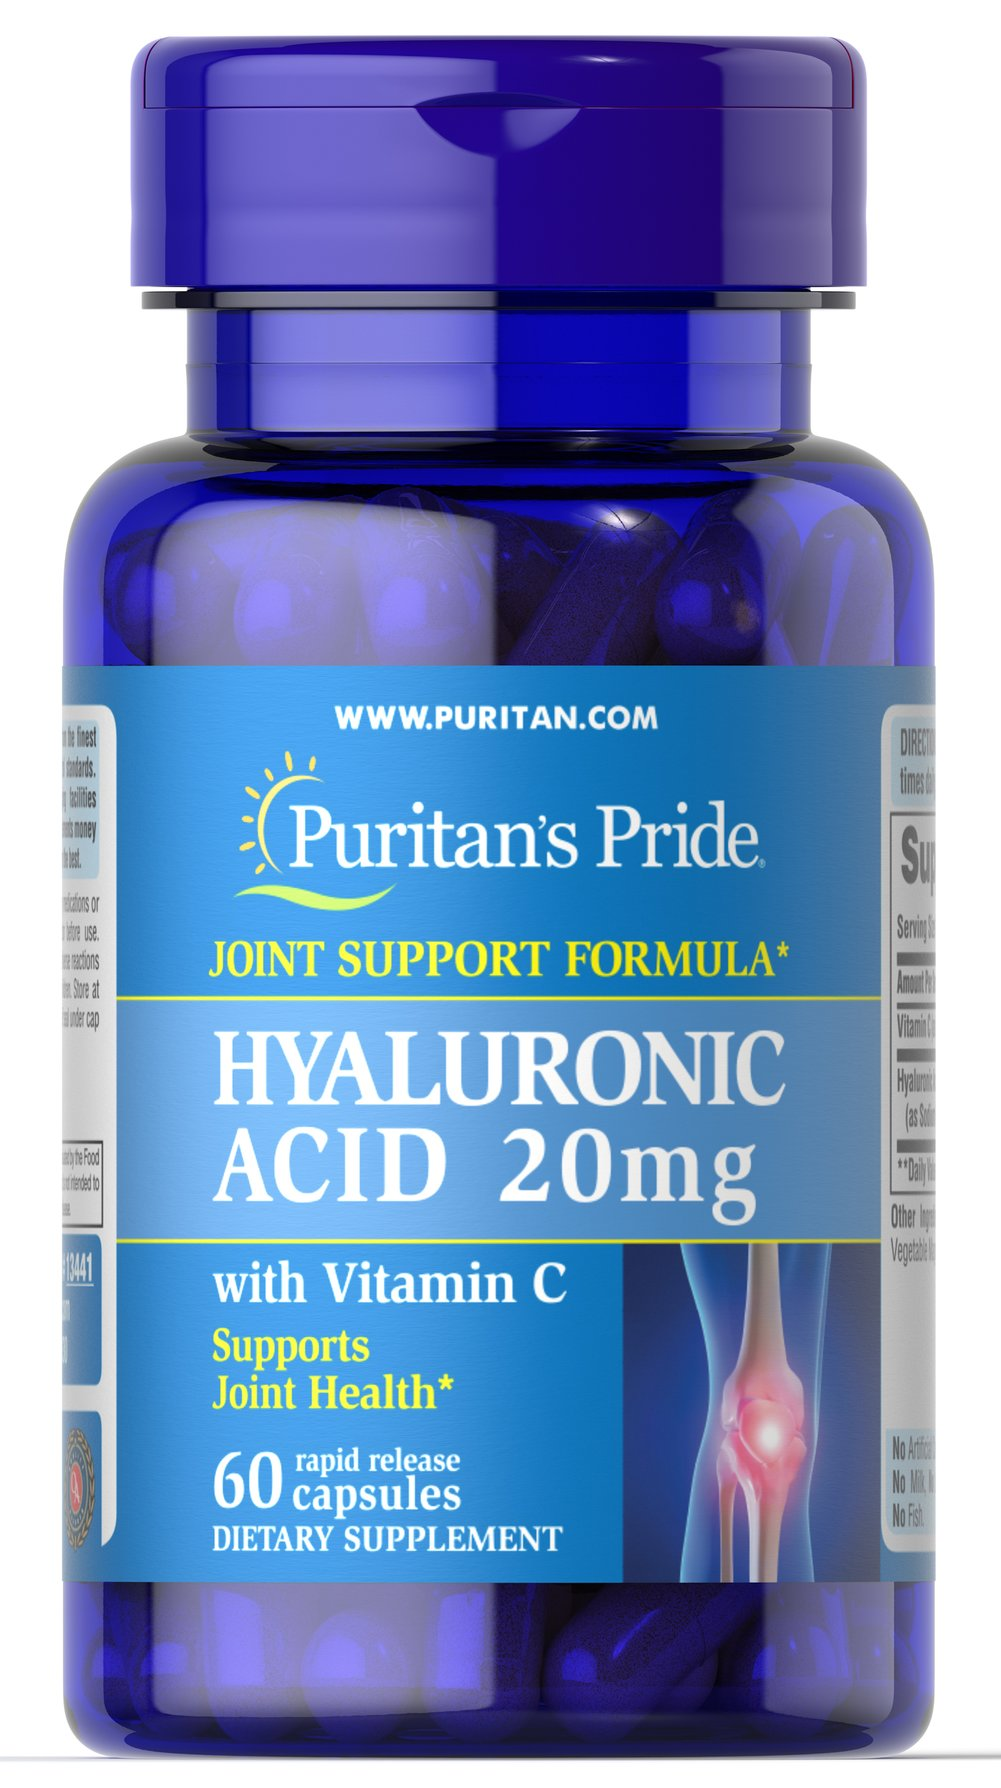 Hyaluronic Acid 20 mg <p>Helps lubricate joints**</p> <p>Hyaluronic Acid is a polysaccharide found in almost all adult connective tissue, including joints, ligaments, tendons and skin.** Just one Hyaluronic Acid capsule a day can help maintain the fluid between your joints, providing the cushioning and lubrication necessary for easy movement.**</p> 60 Capsules 20 mg $18.99